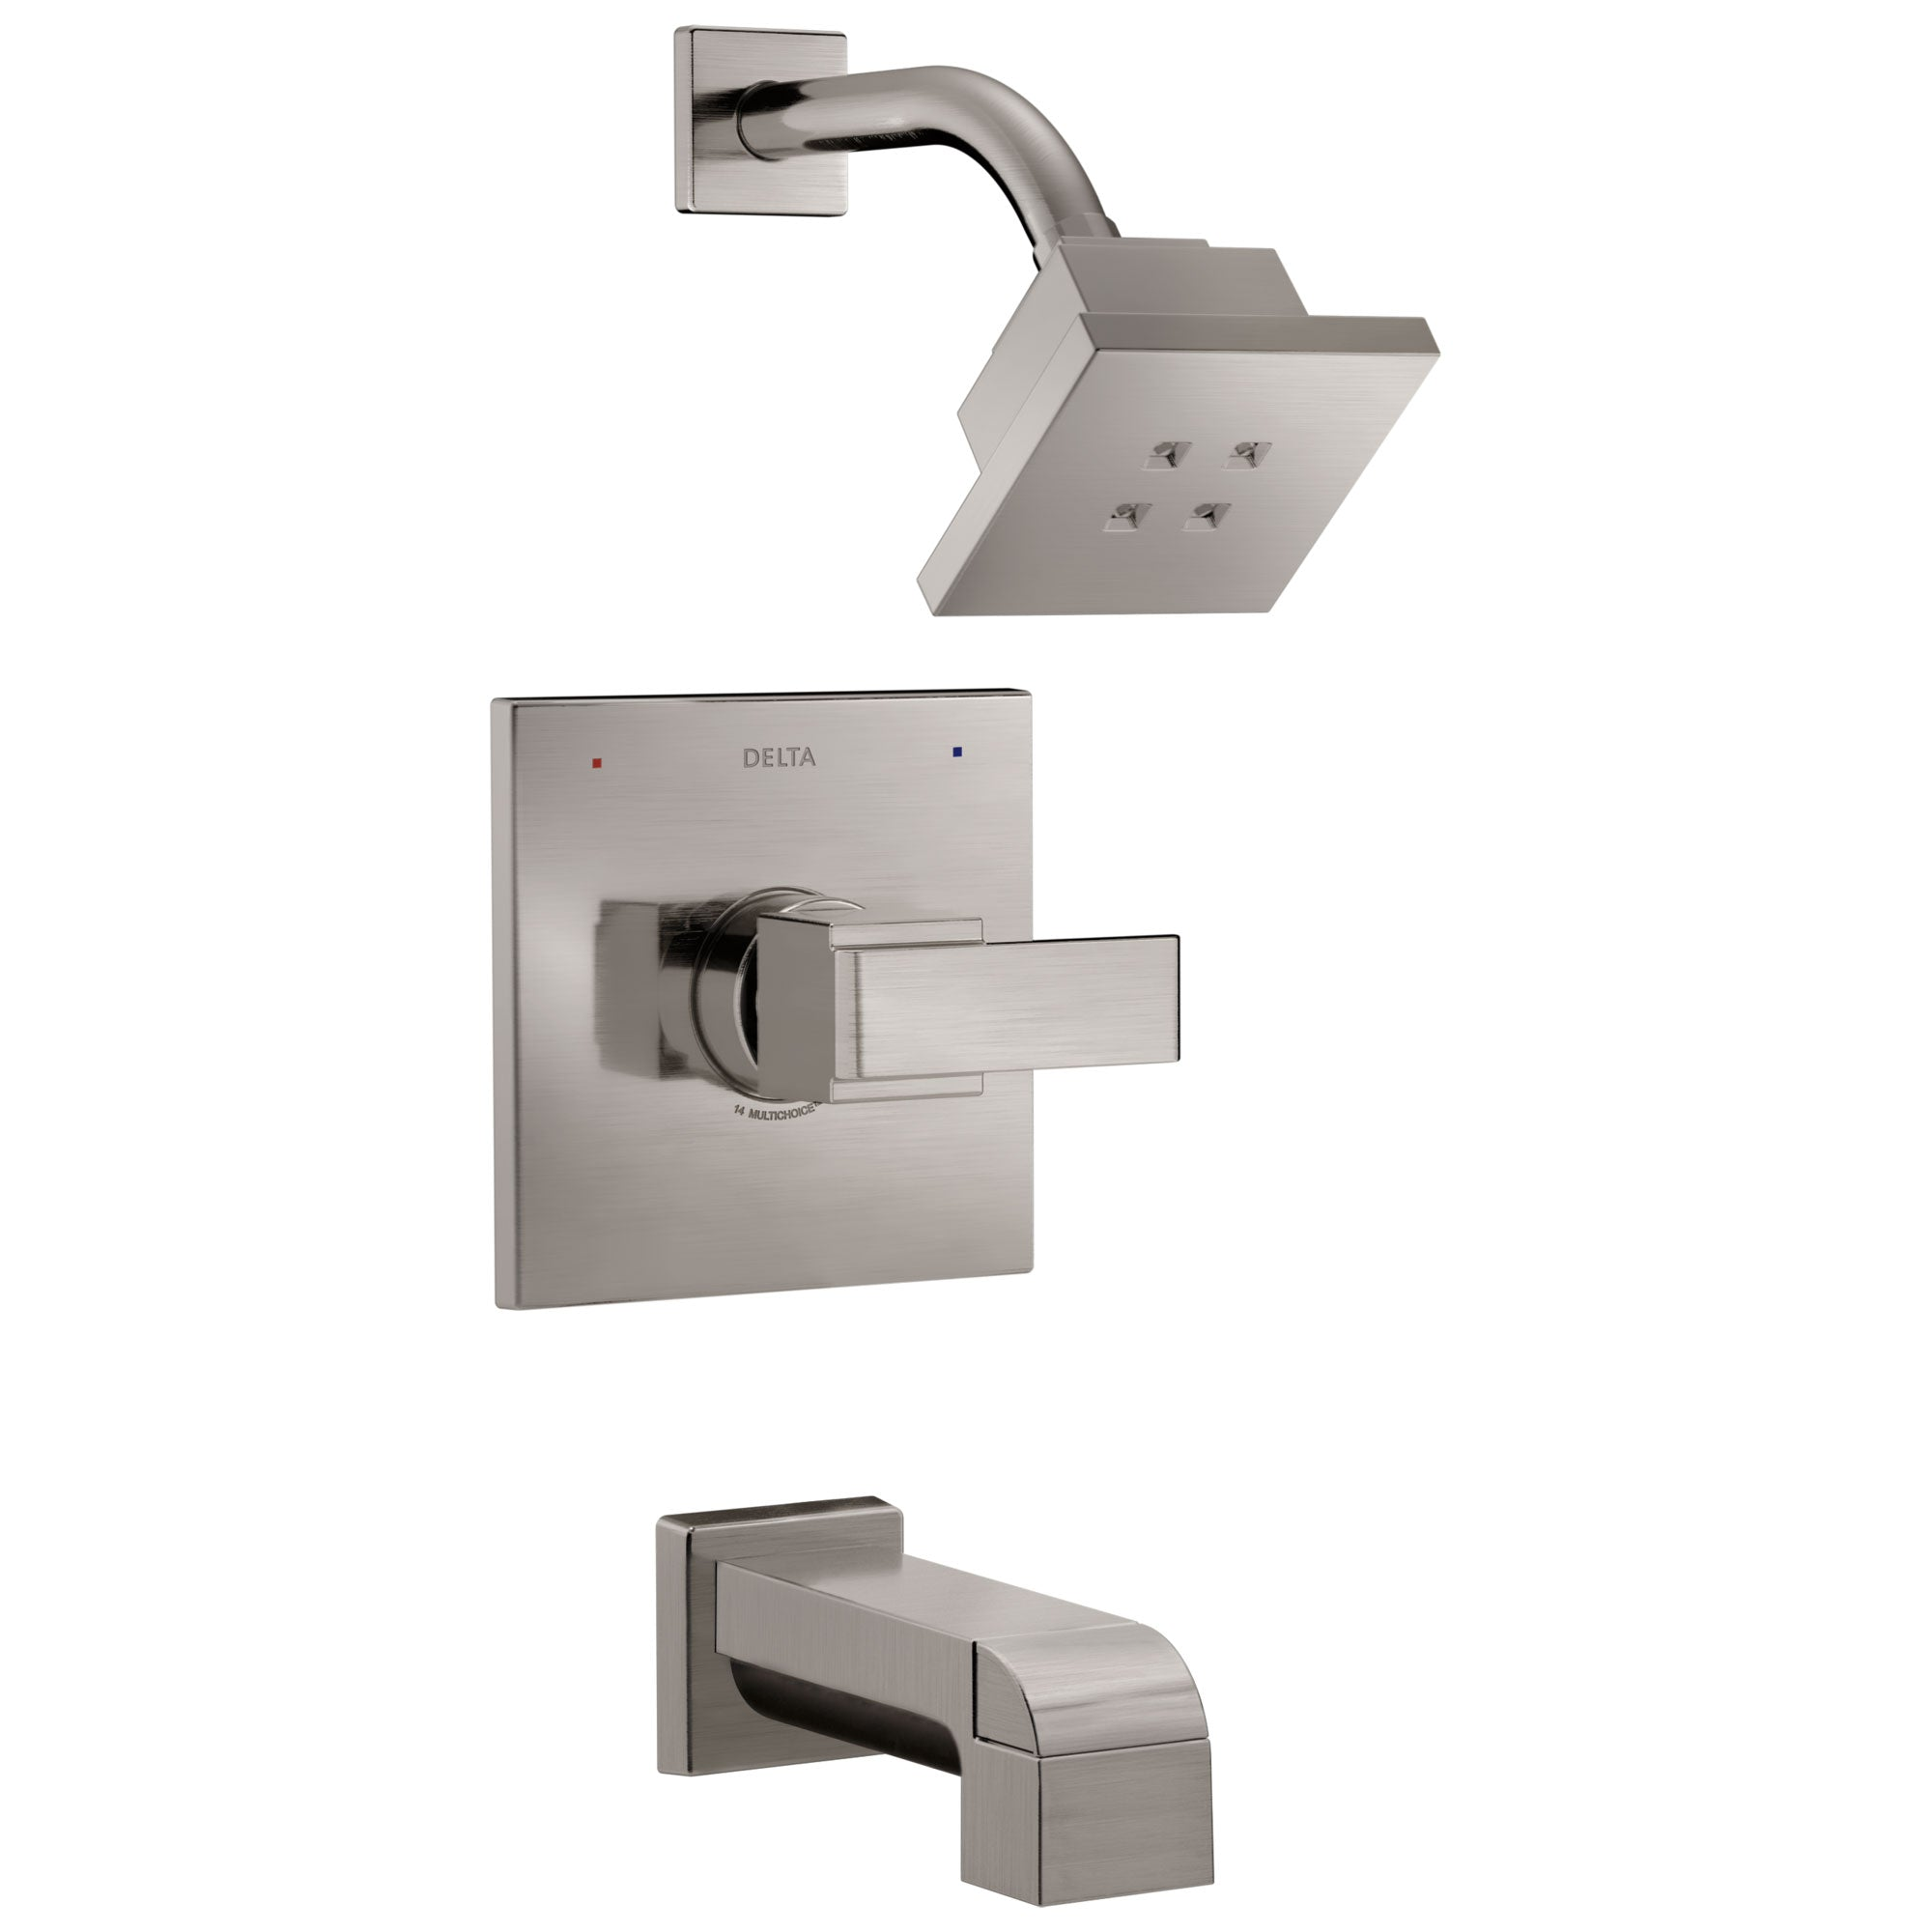 Delta Ara Collection Stainless Steel Finish Modern 1 Handle Monitor 14 Square Tub and Shower Faucet Combo Includes Valve with Stops D1993V